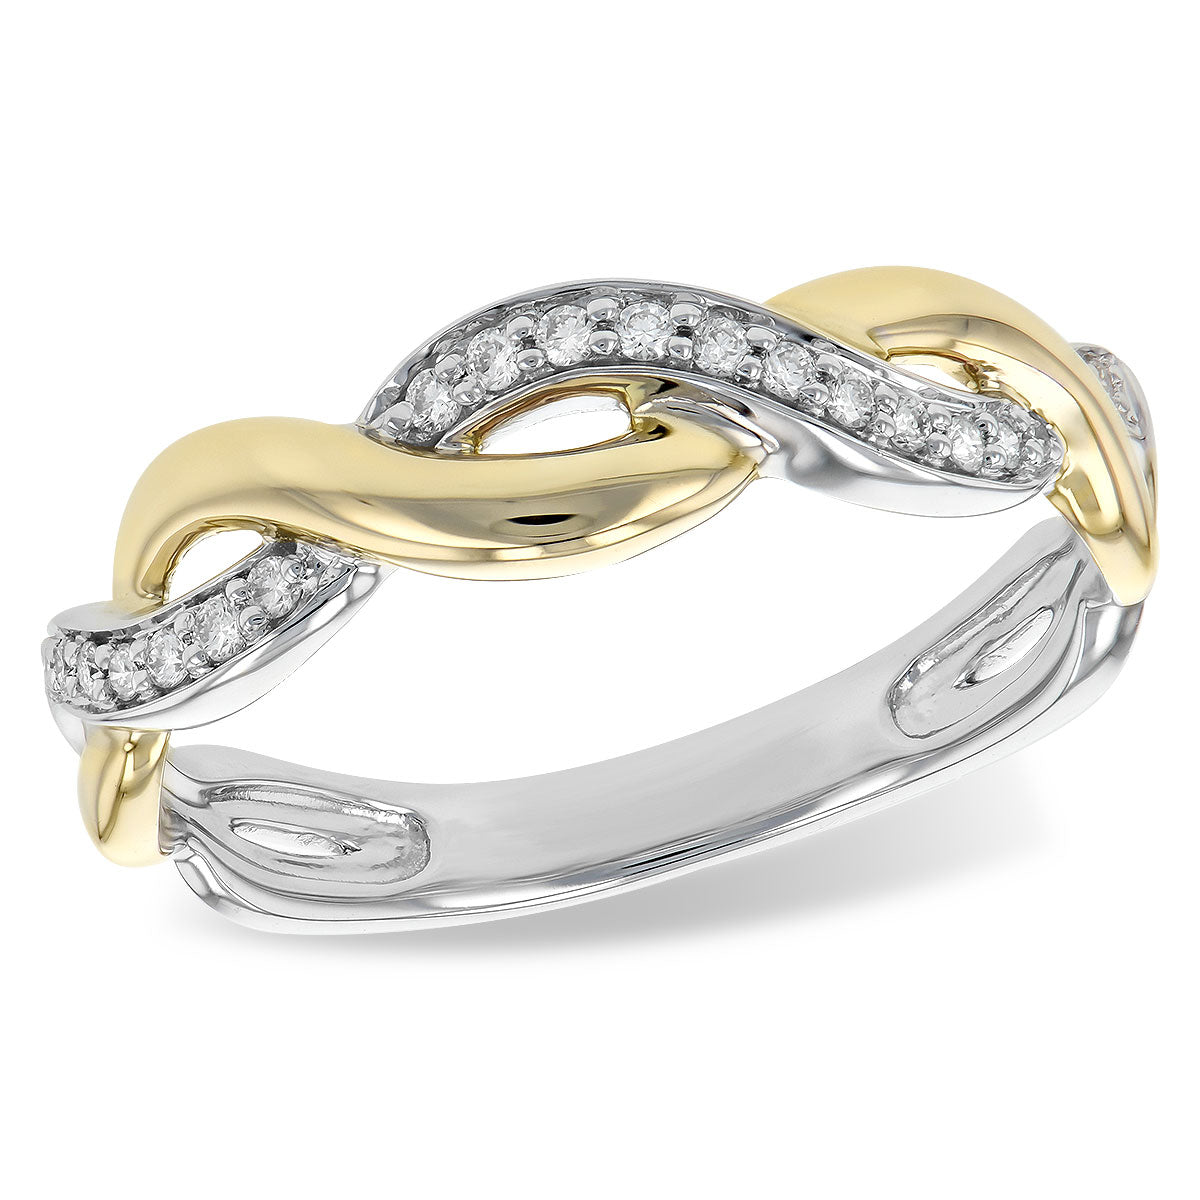 14k White Gold, Rose Gold and Diamond Twist Ring